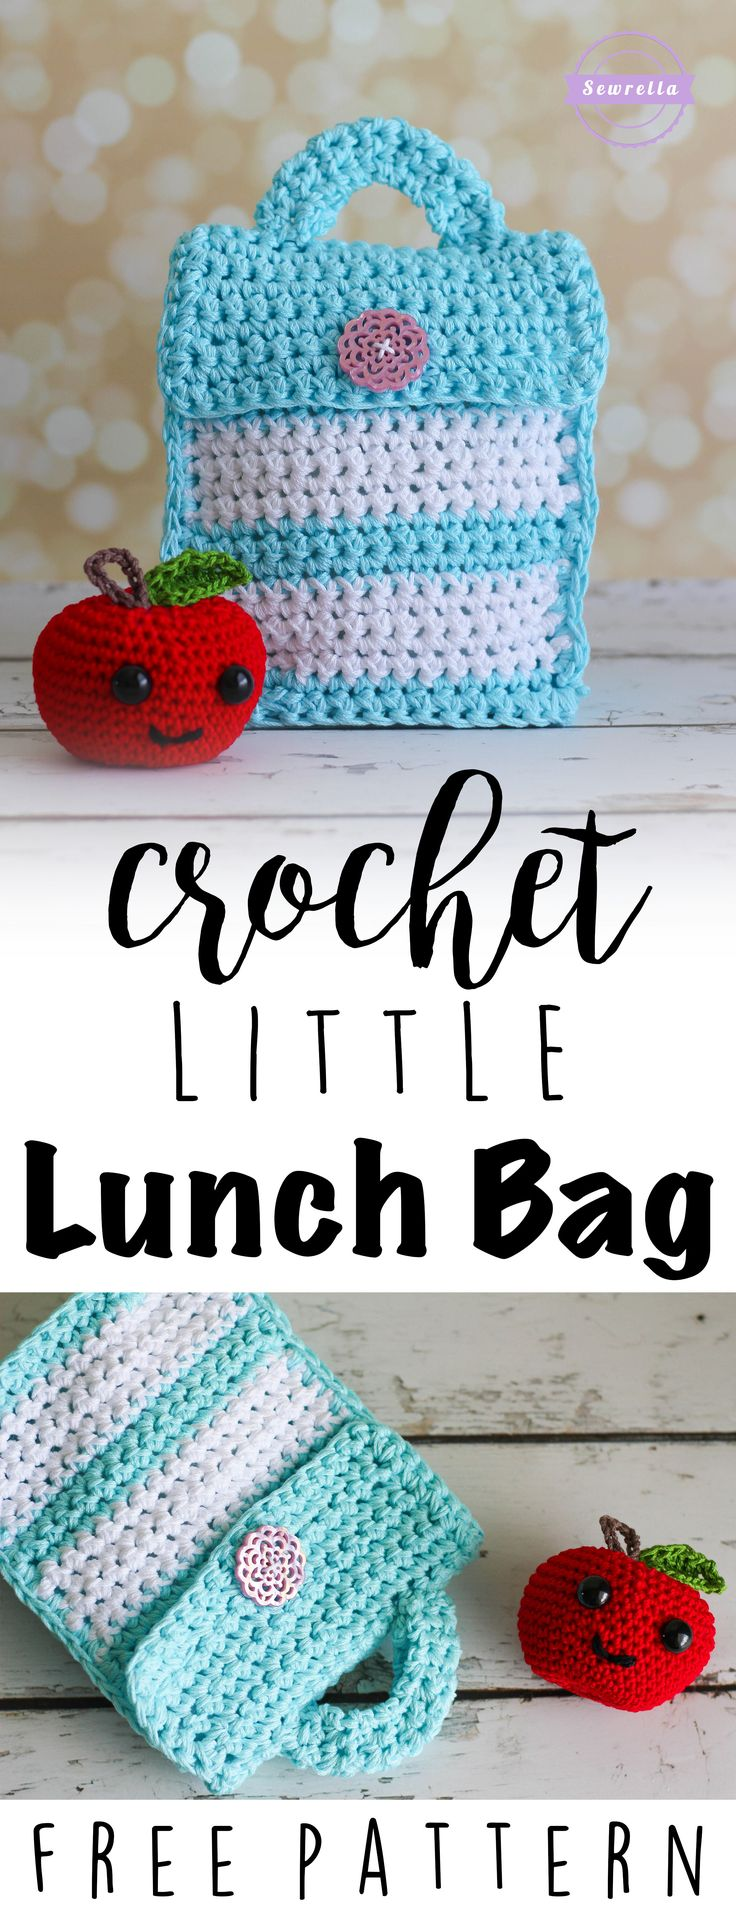 281 best Crochet: Bags and Accessories images on Pinterest | Crochet ...